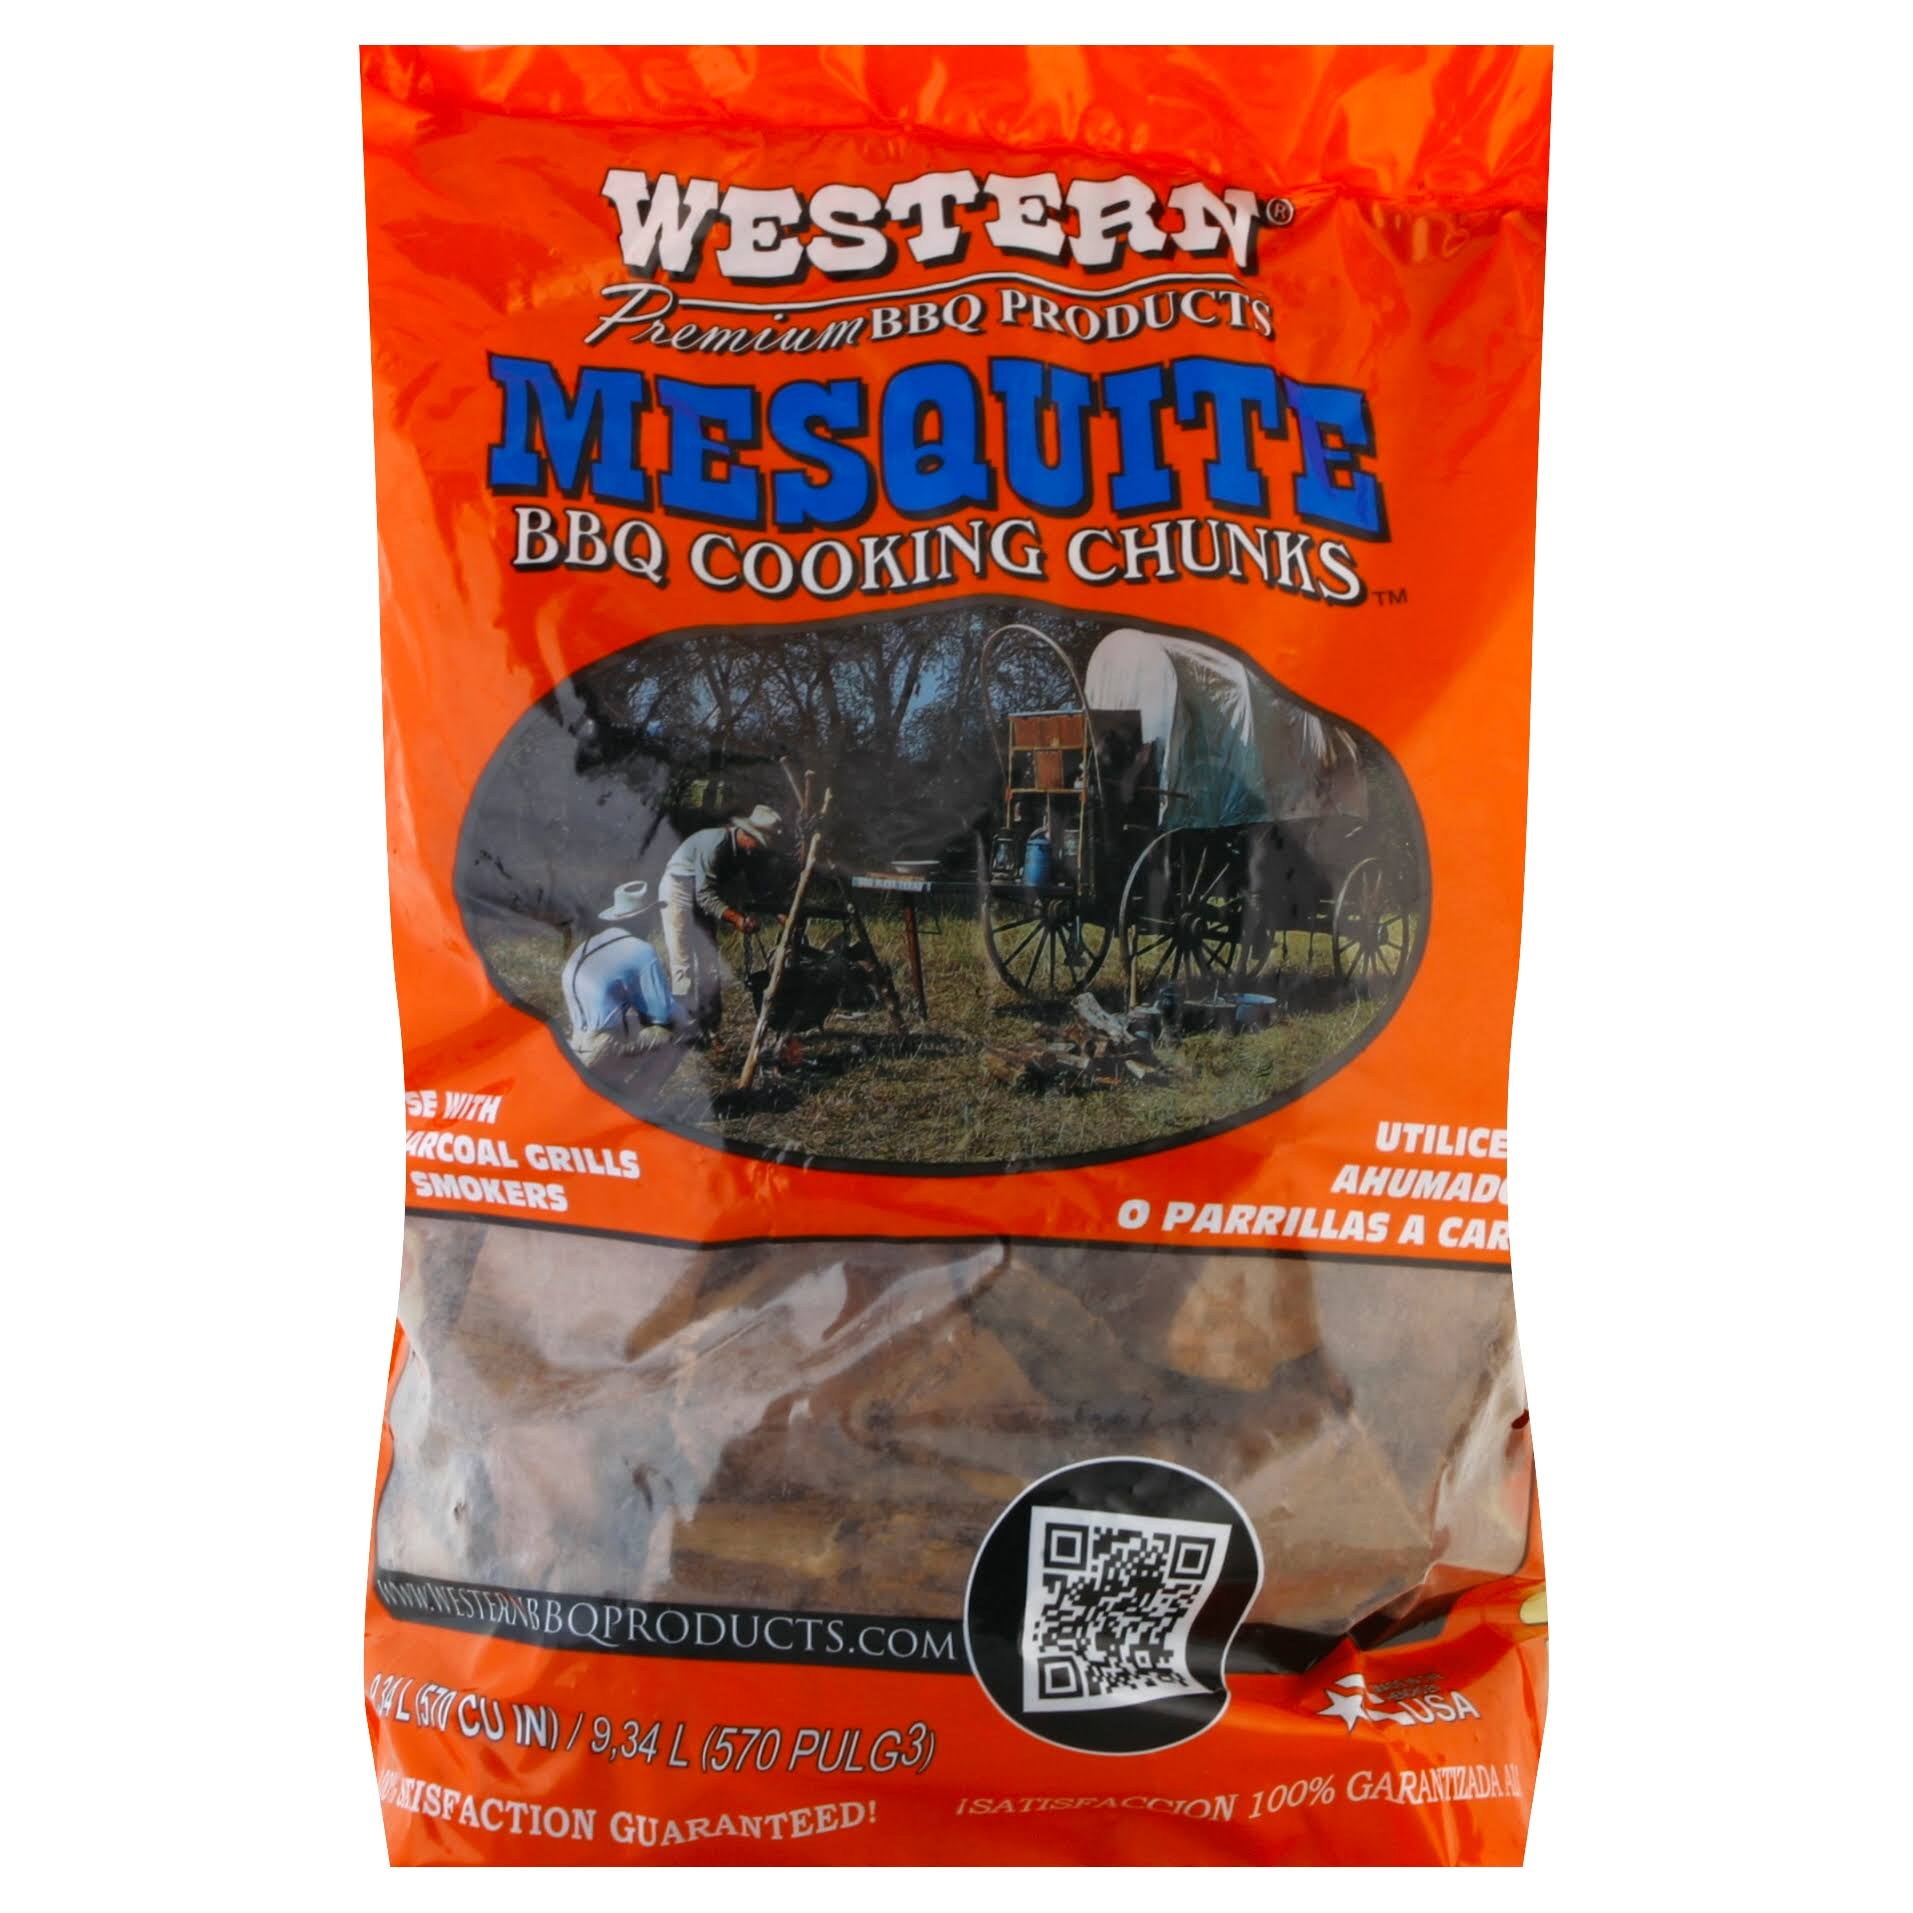 Western Mesquite BBQ Cooking Chunks - 8lbs